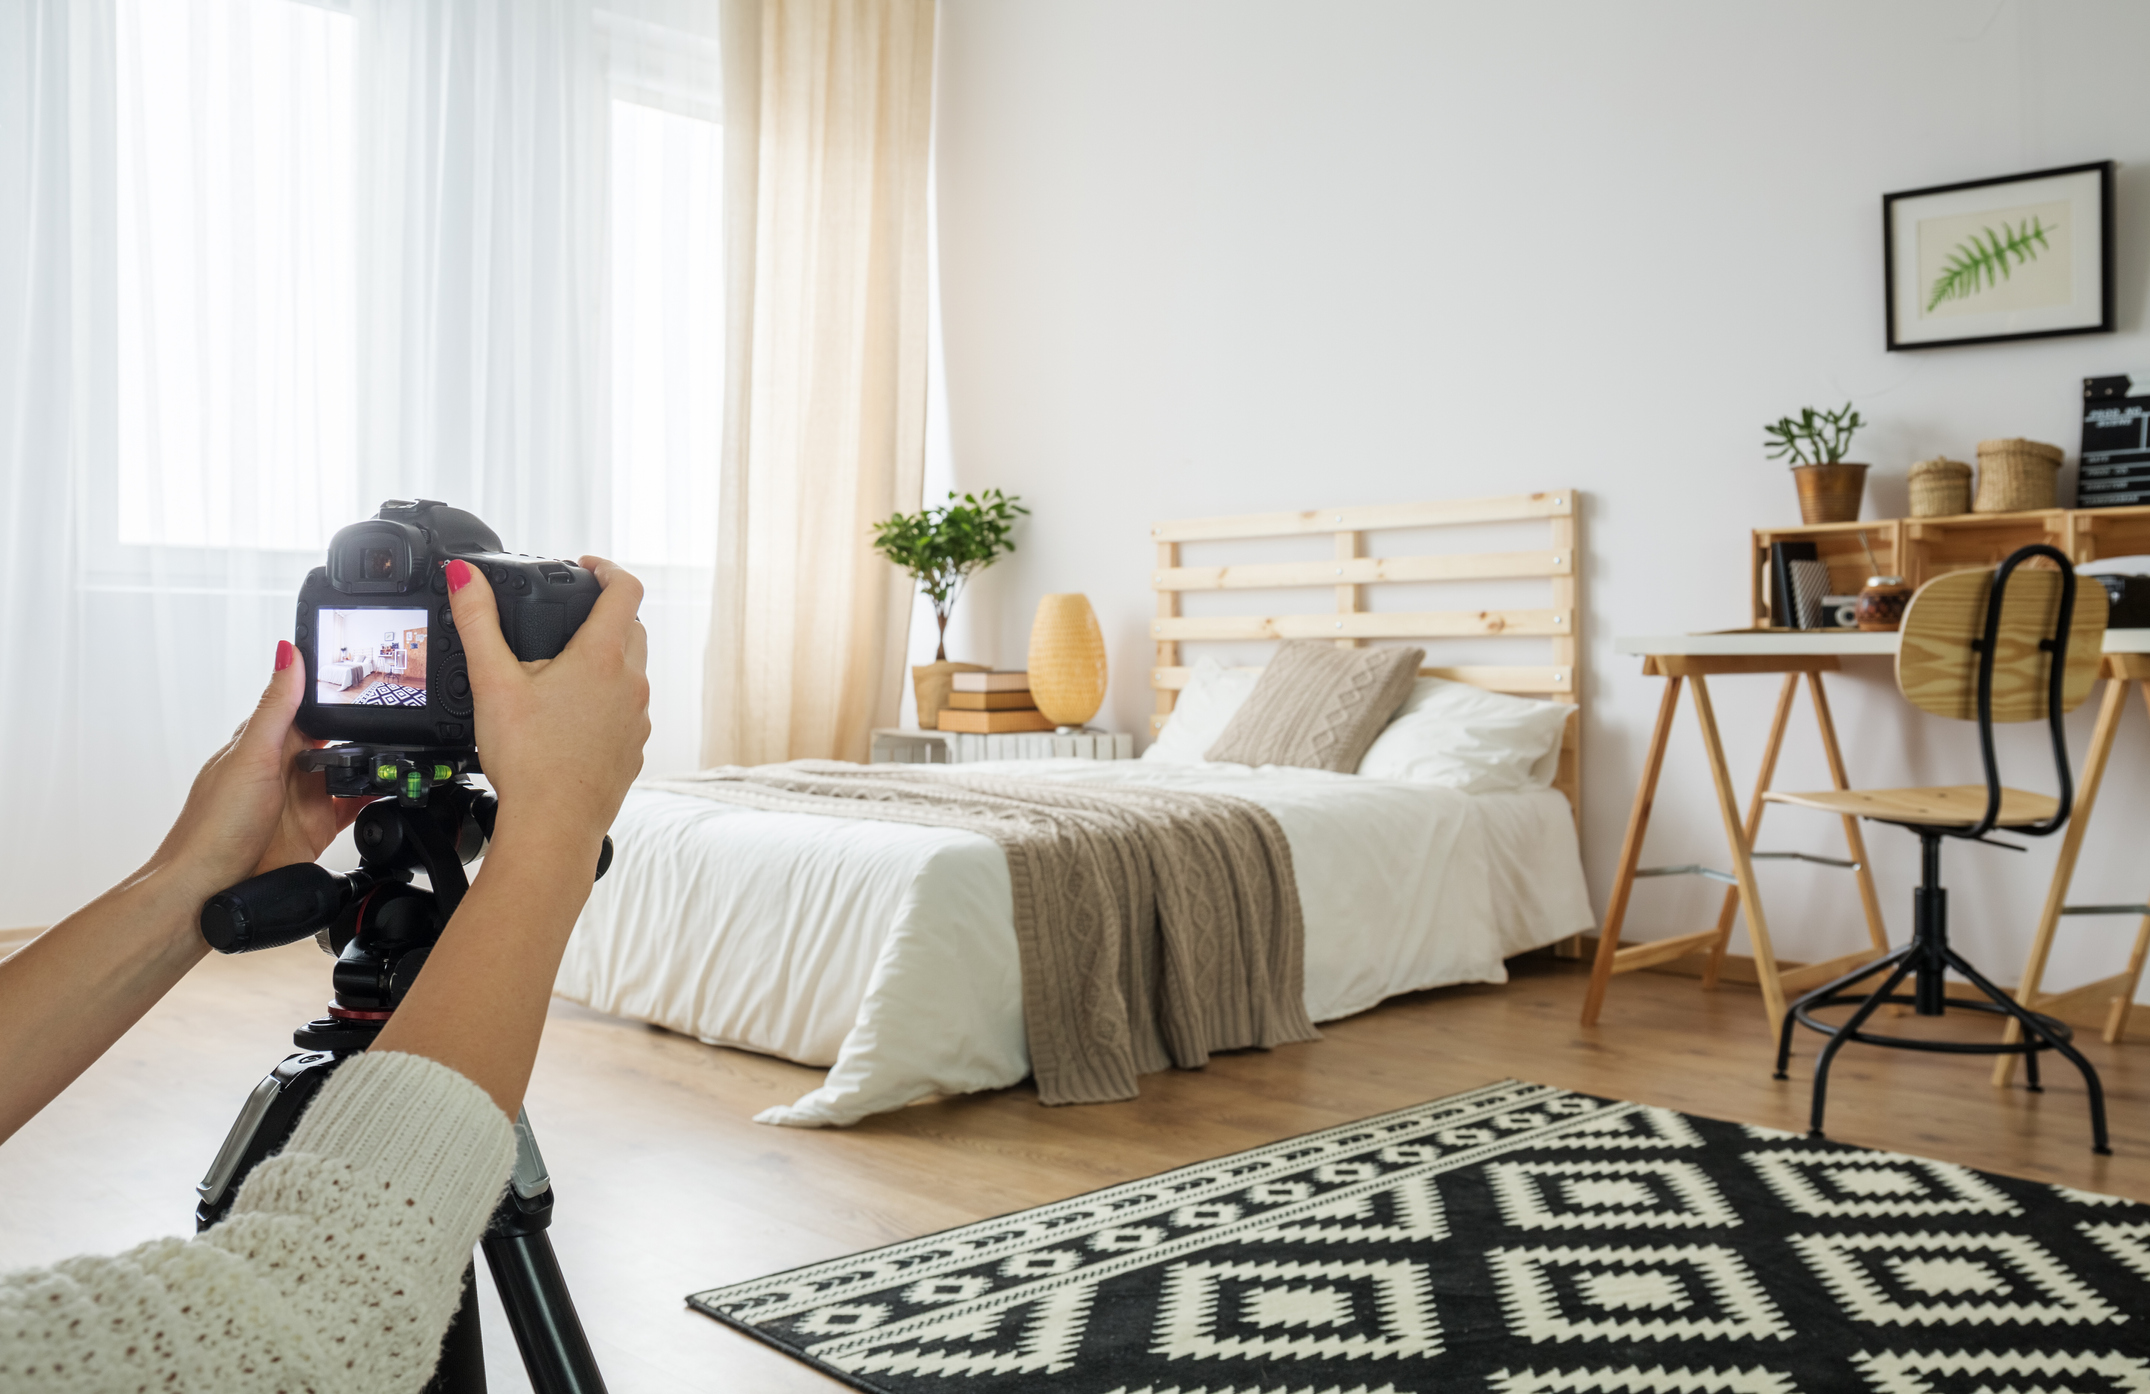 stock image of person taking a staged photo of bedroom